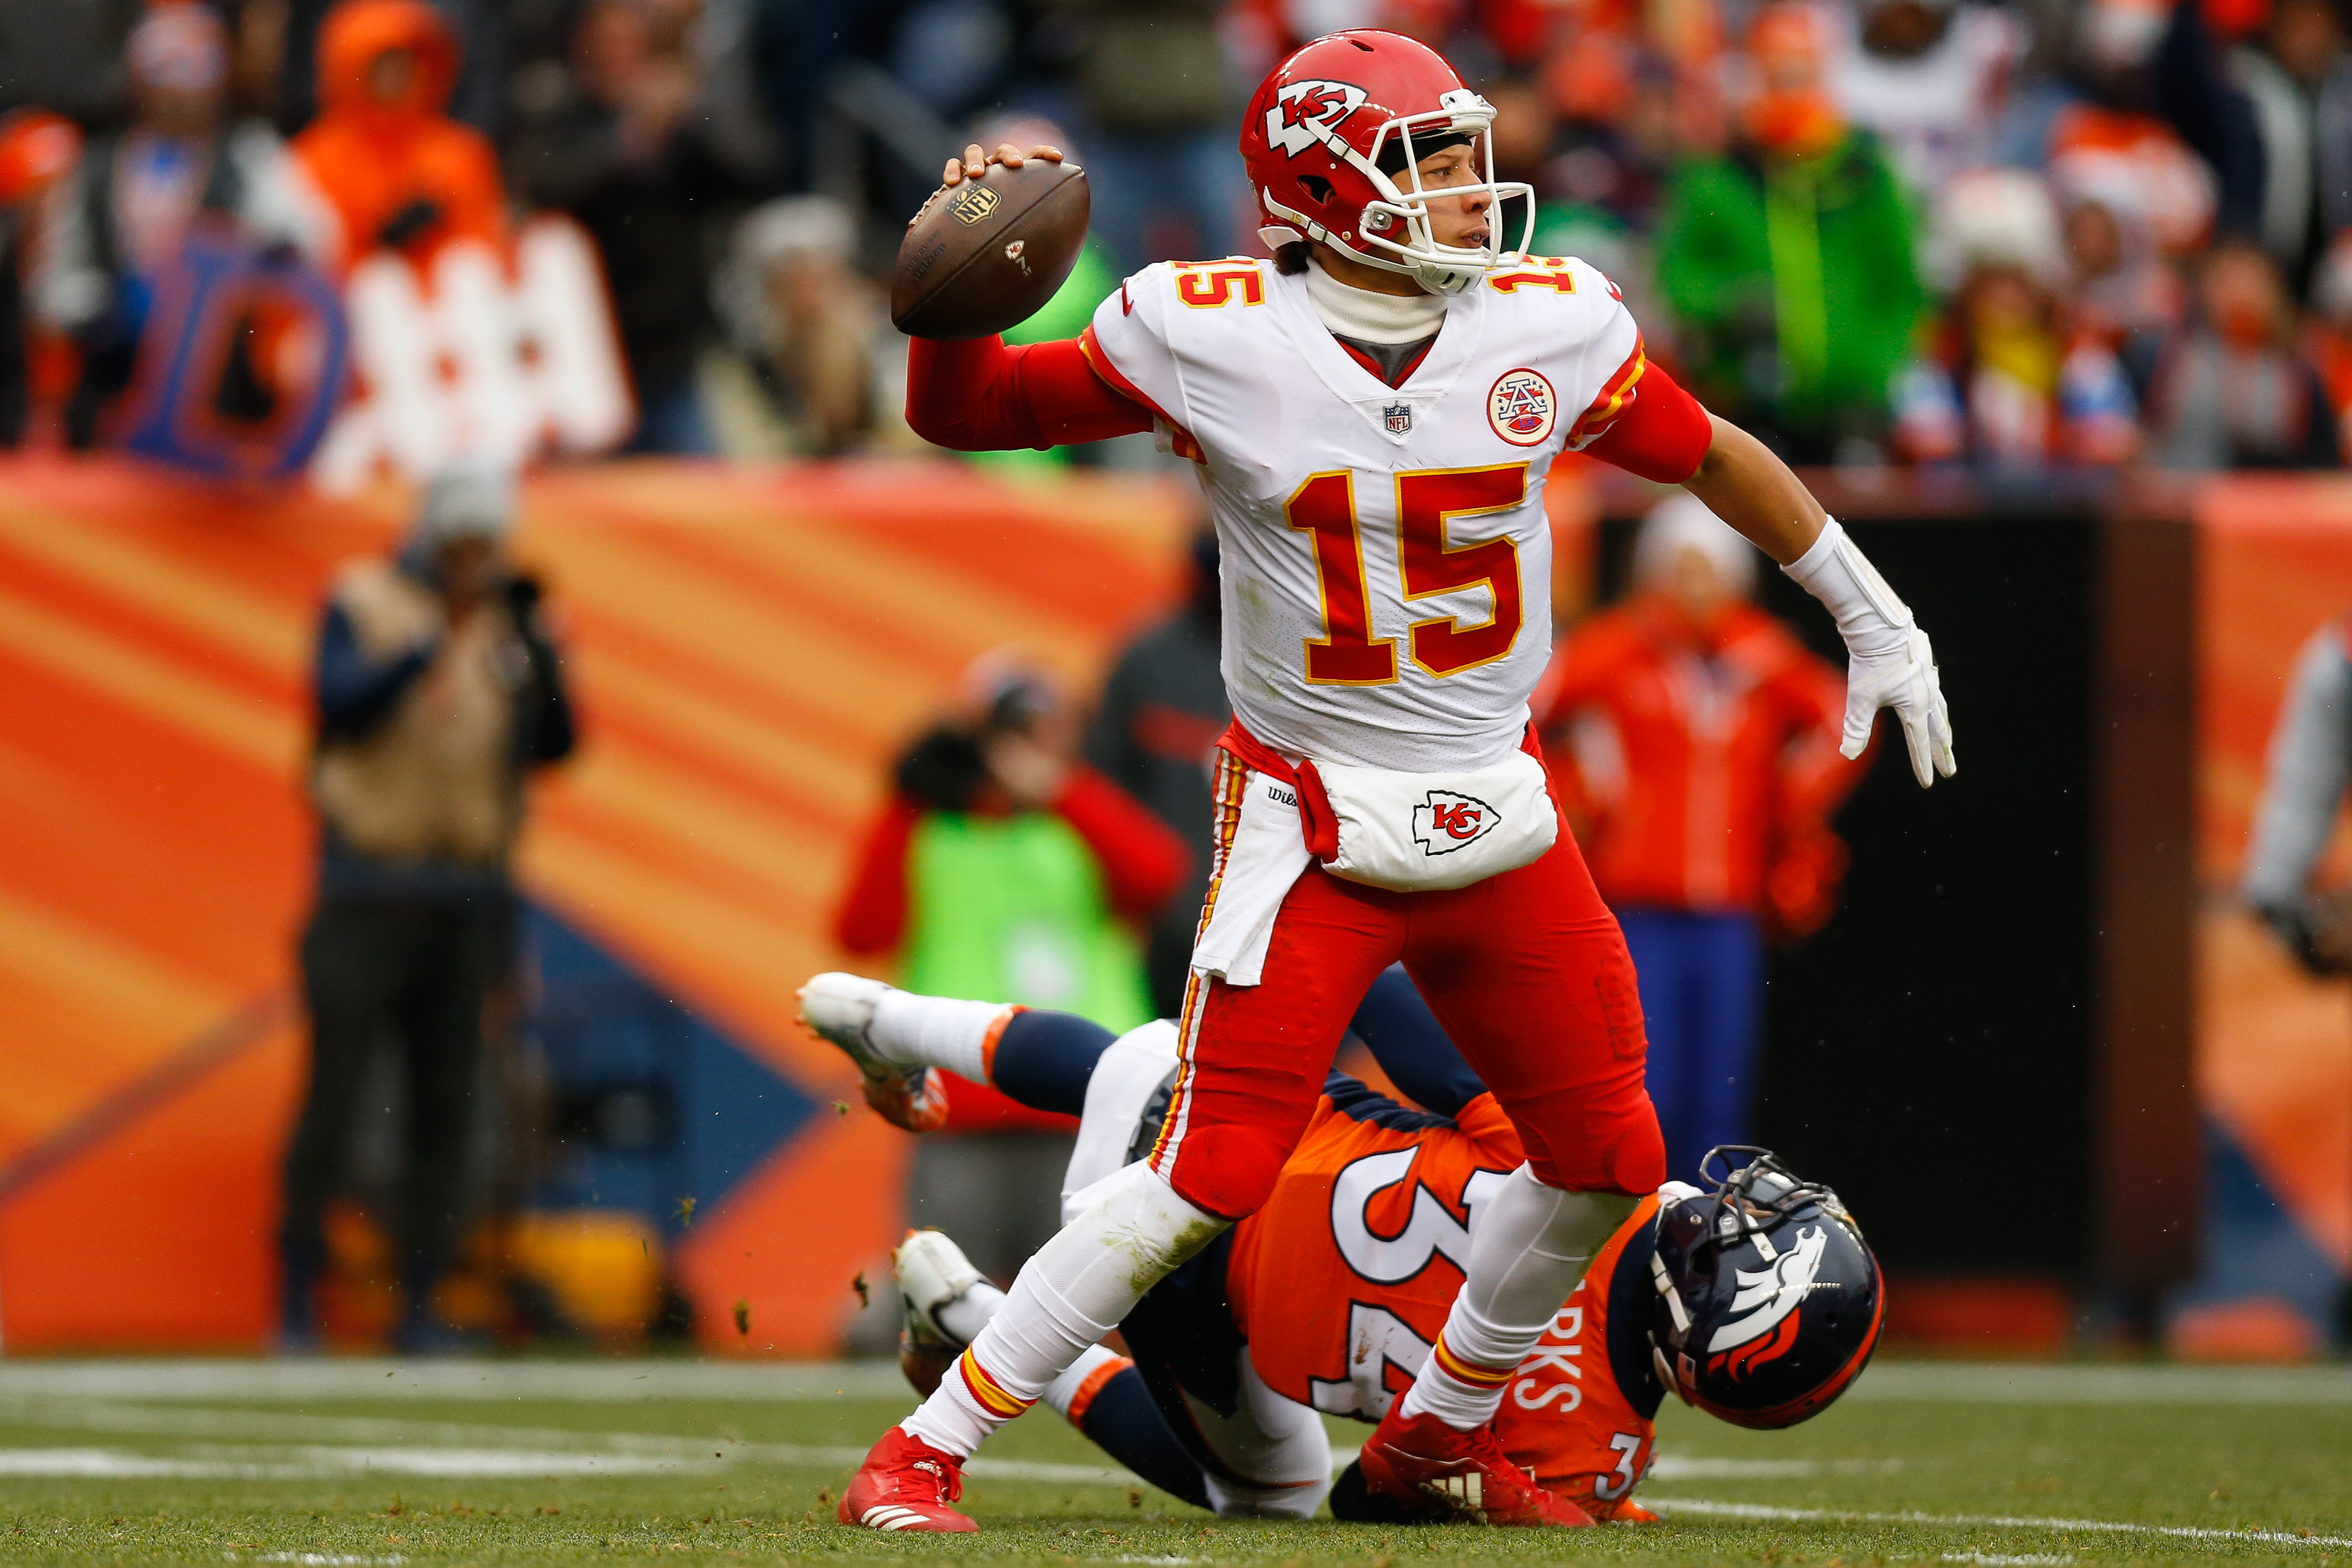 Kansas City Chiefs: Five observations on the debut of Patrick Mahomes